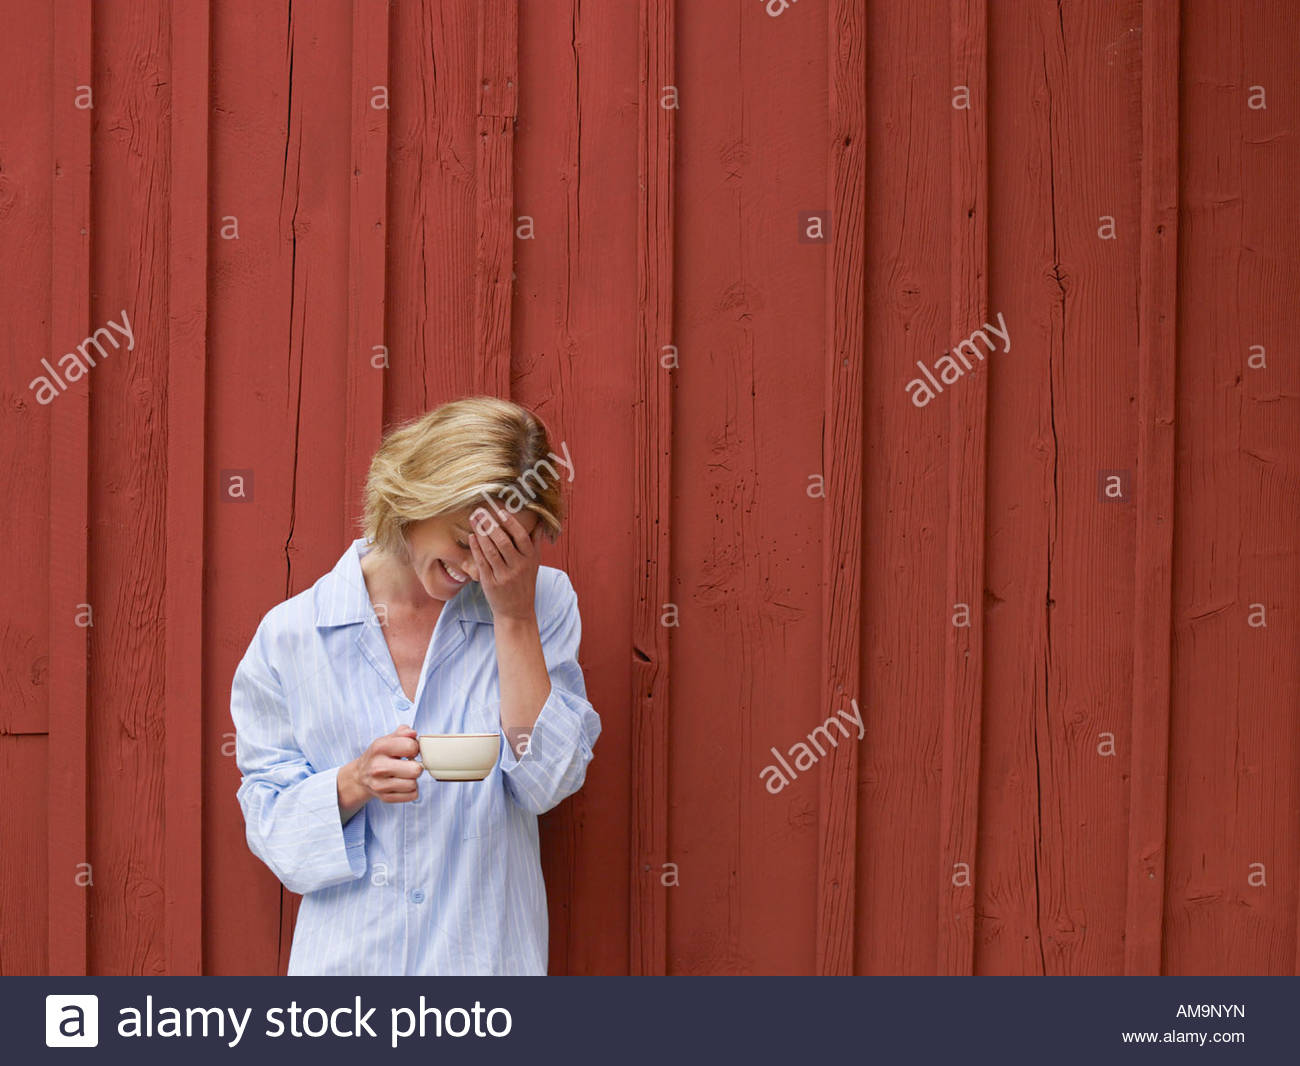 Woman with mug standing in front of red wall laughing. - Stock Image